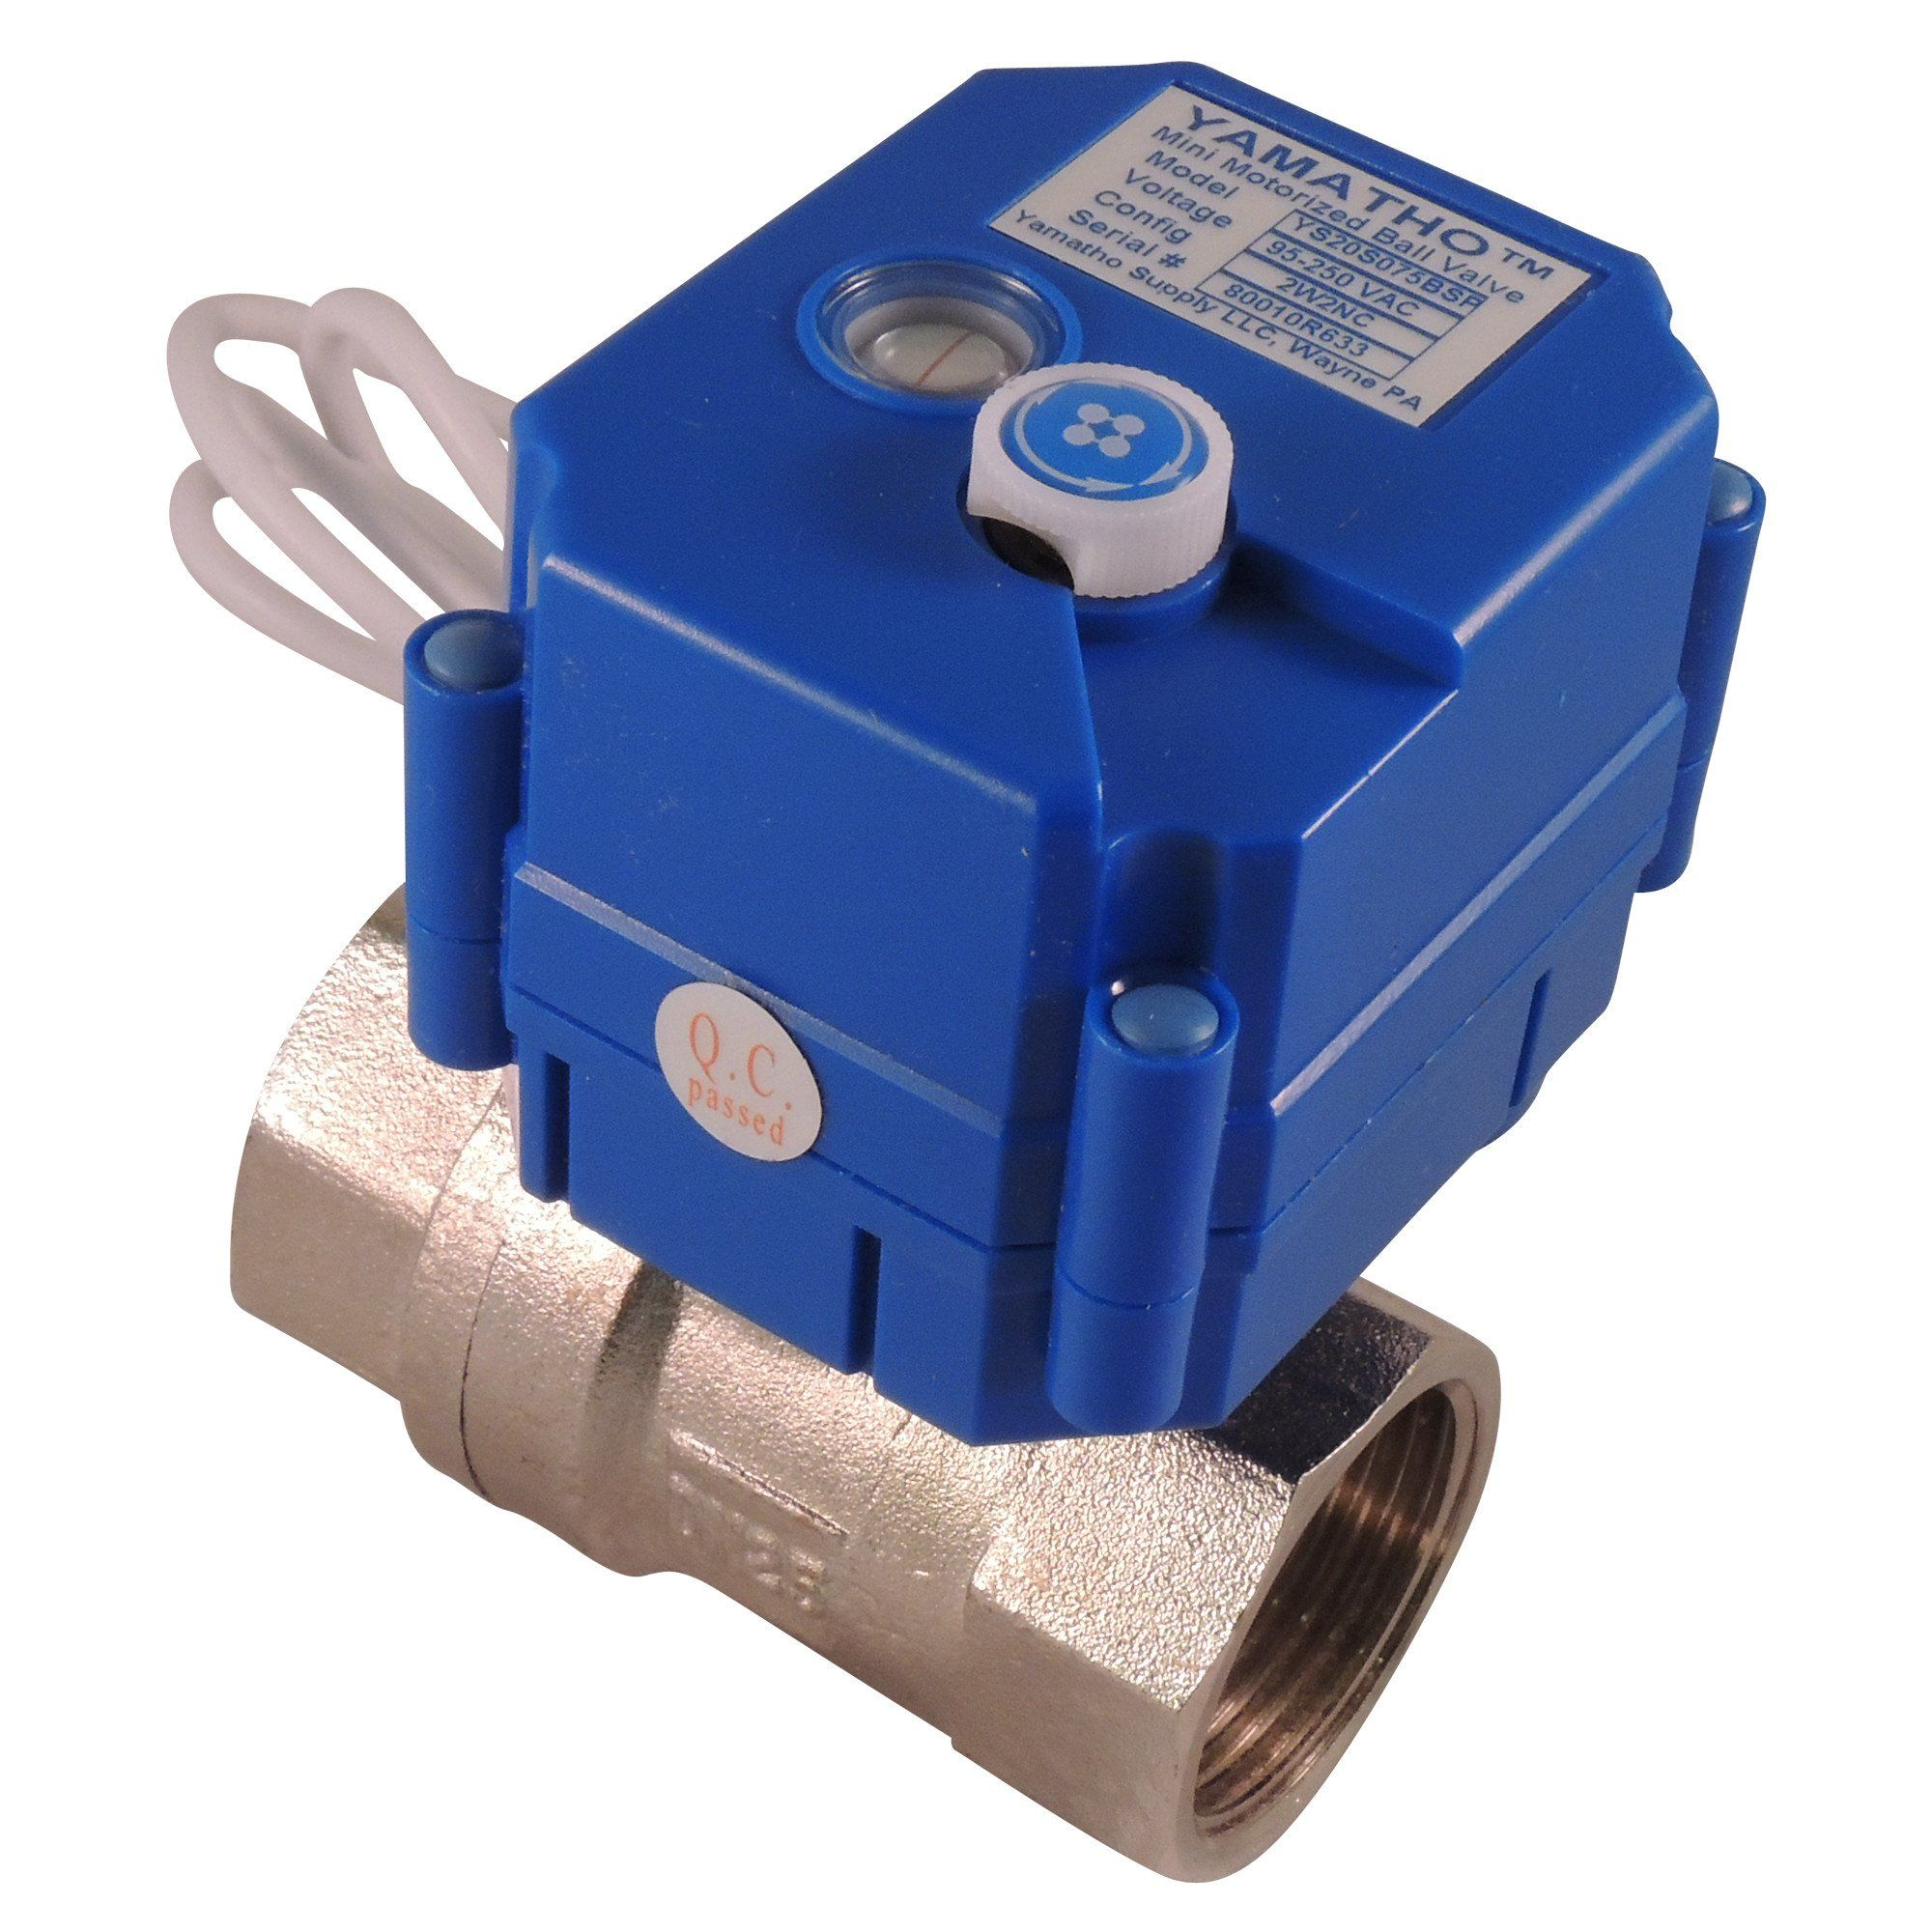 Electric Ball Valve Ys20s 2 Wires Actuator 95 250 Vac Yamavalve Water Treatment Specialty Chemicals Water Valves